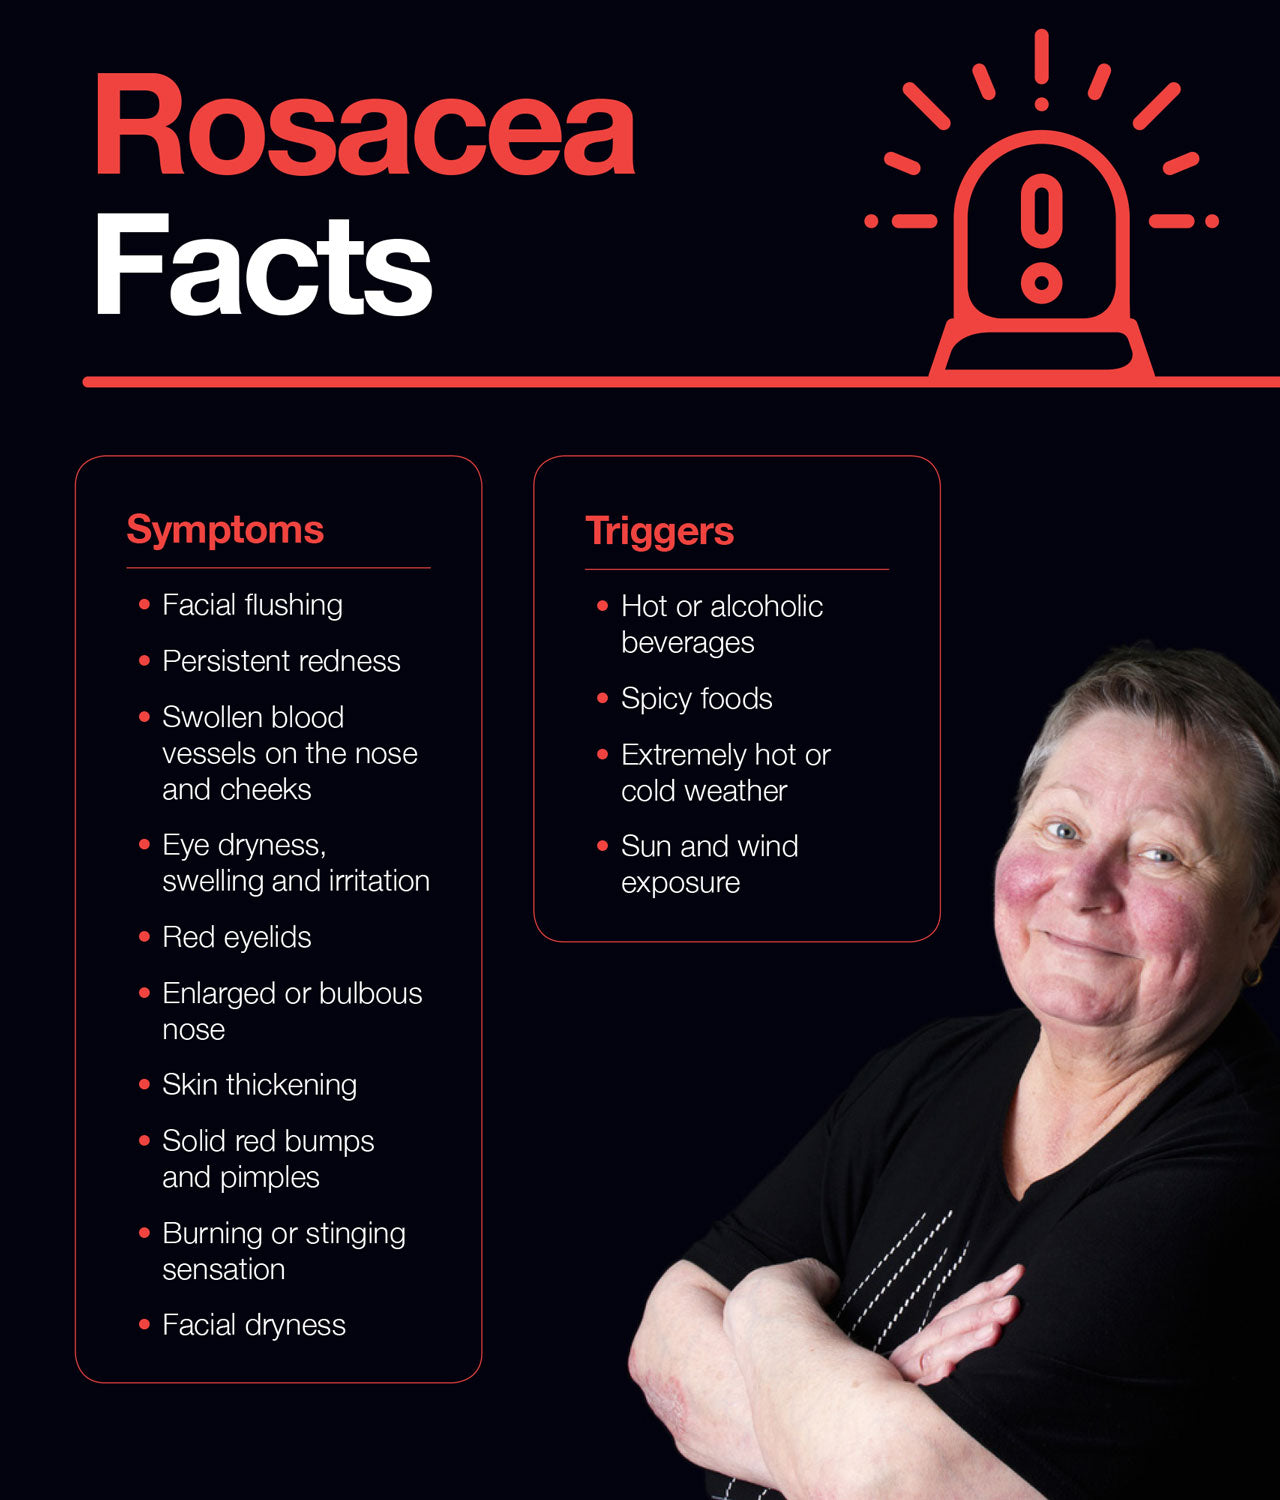 Rosacea facts to know